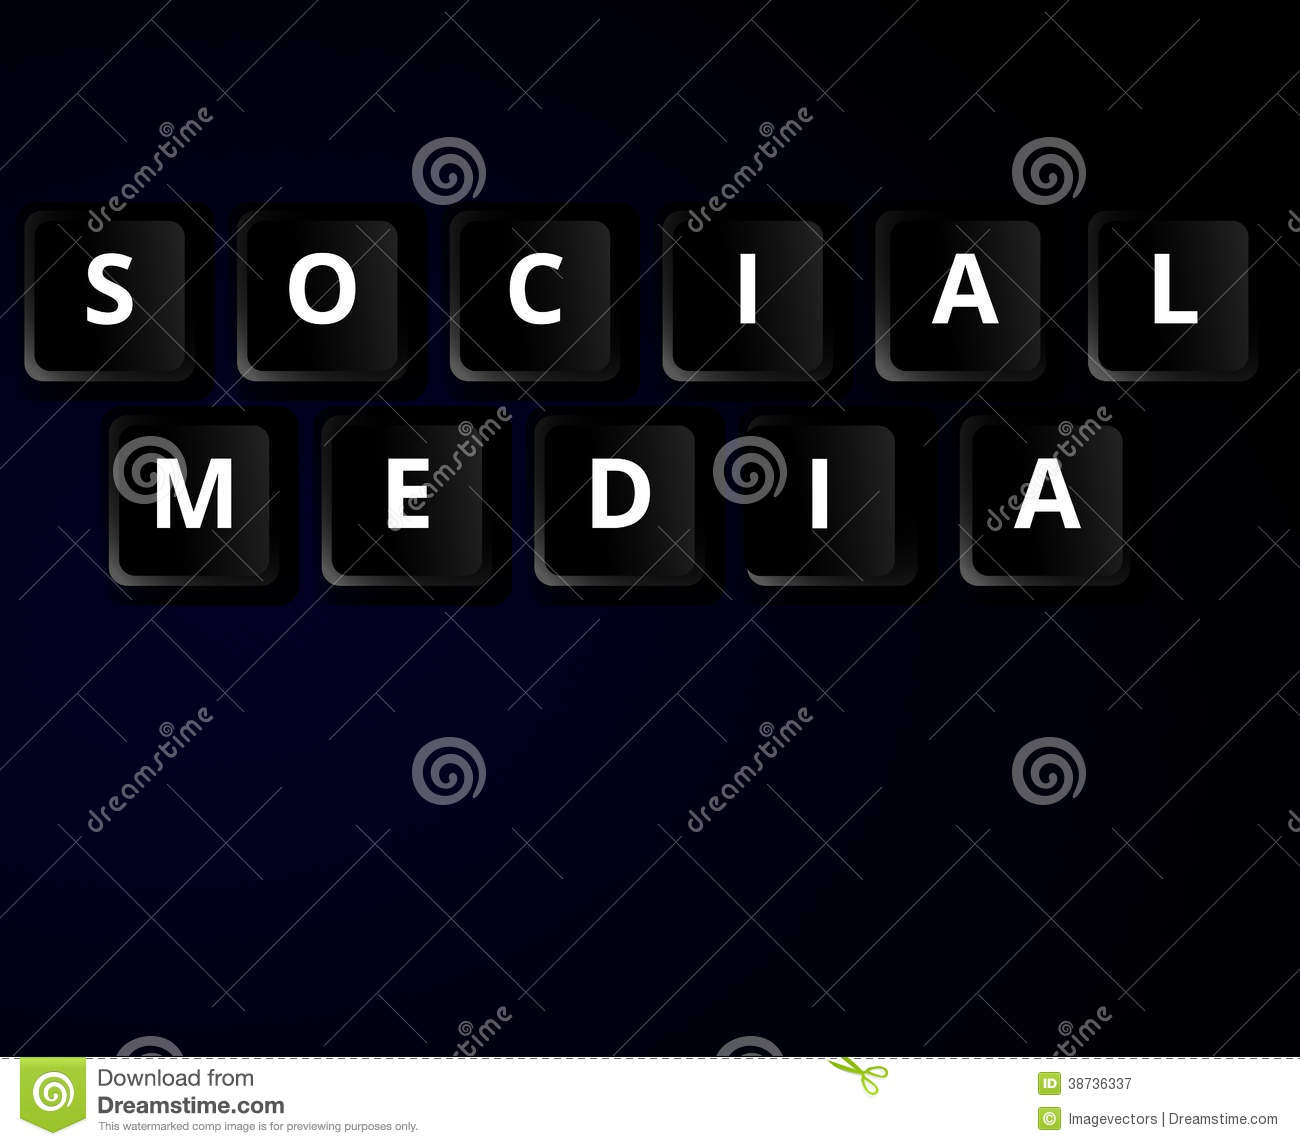 Social media keys concept stock vector  Illustration of company